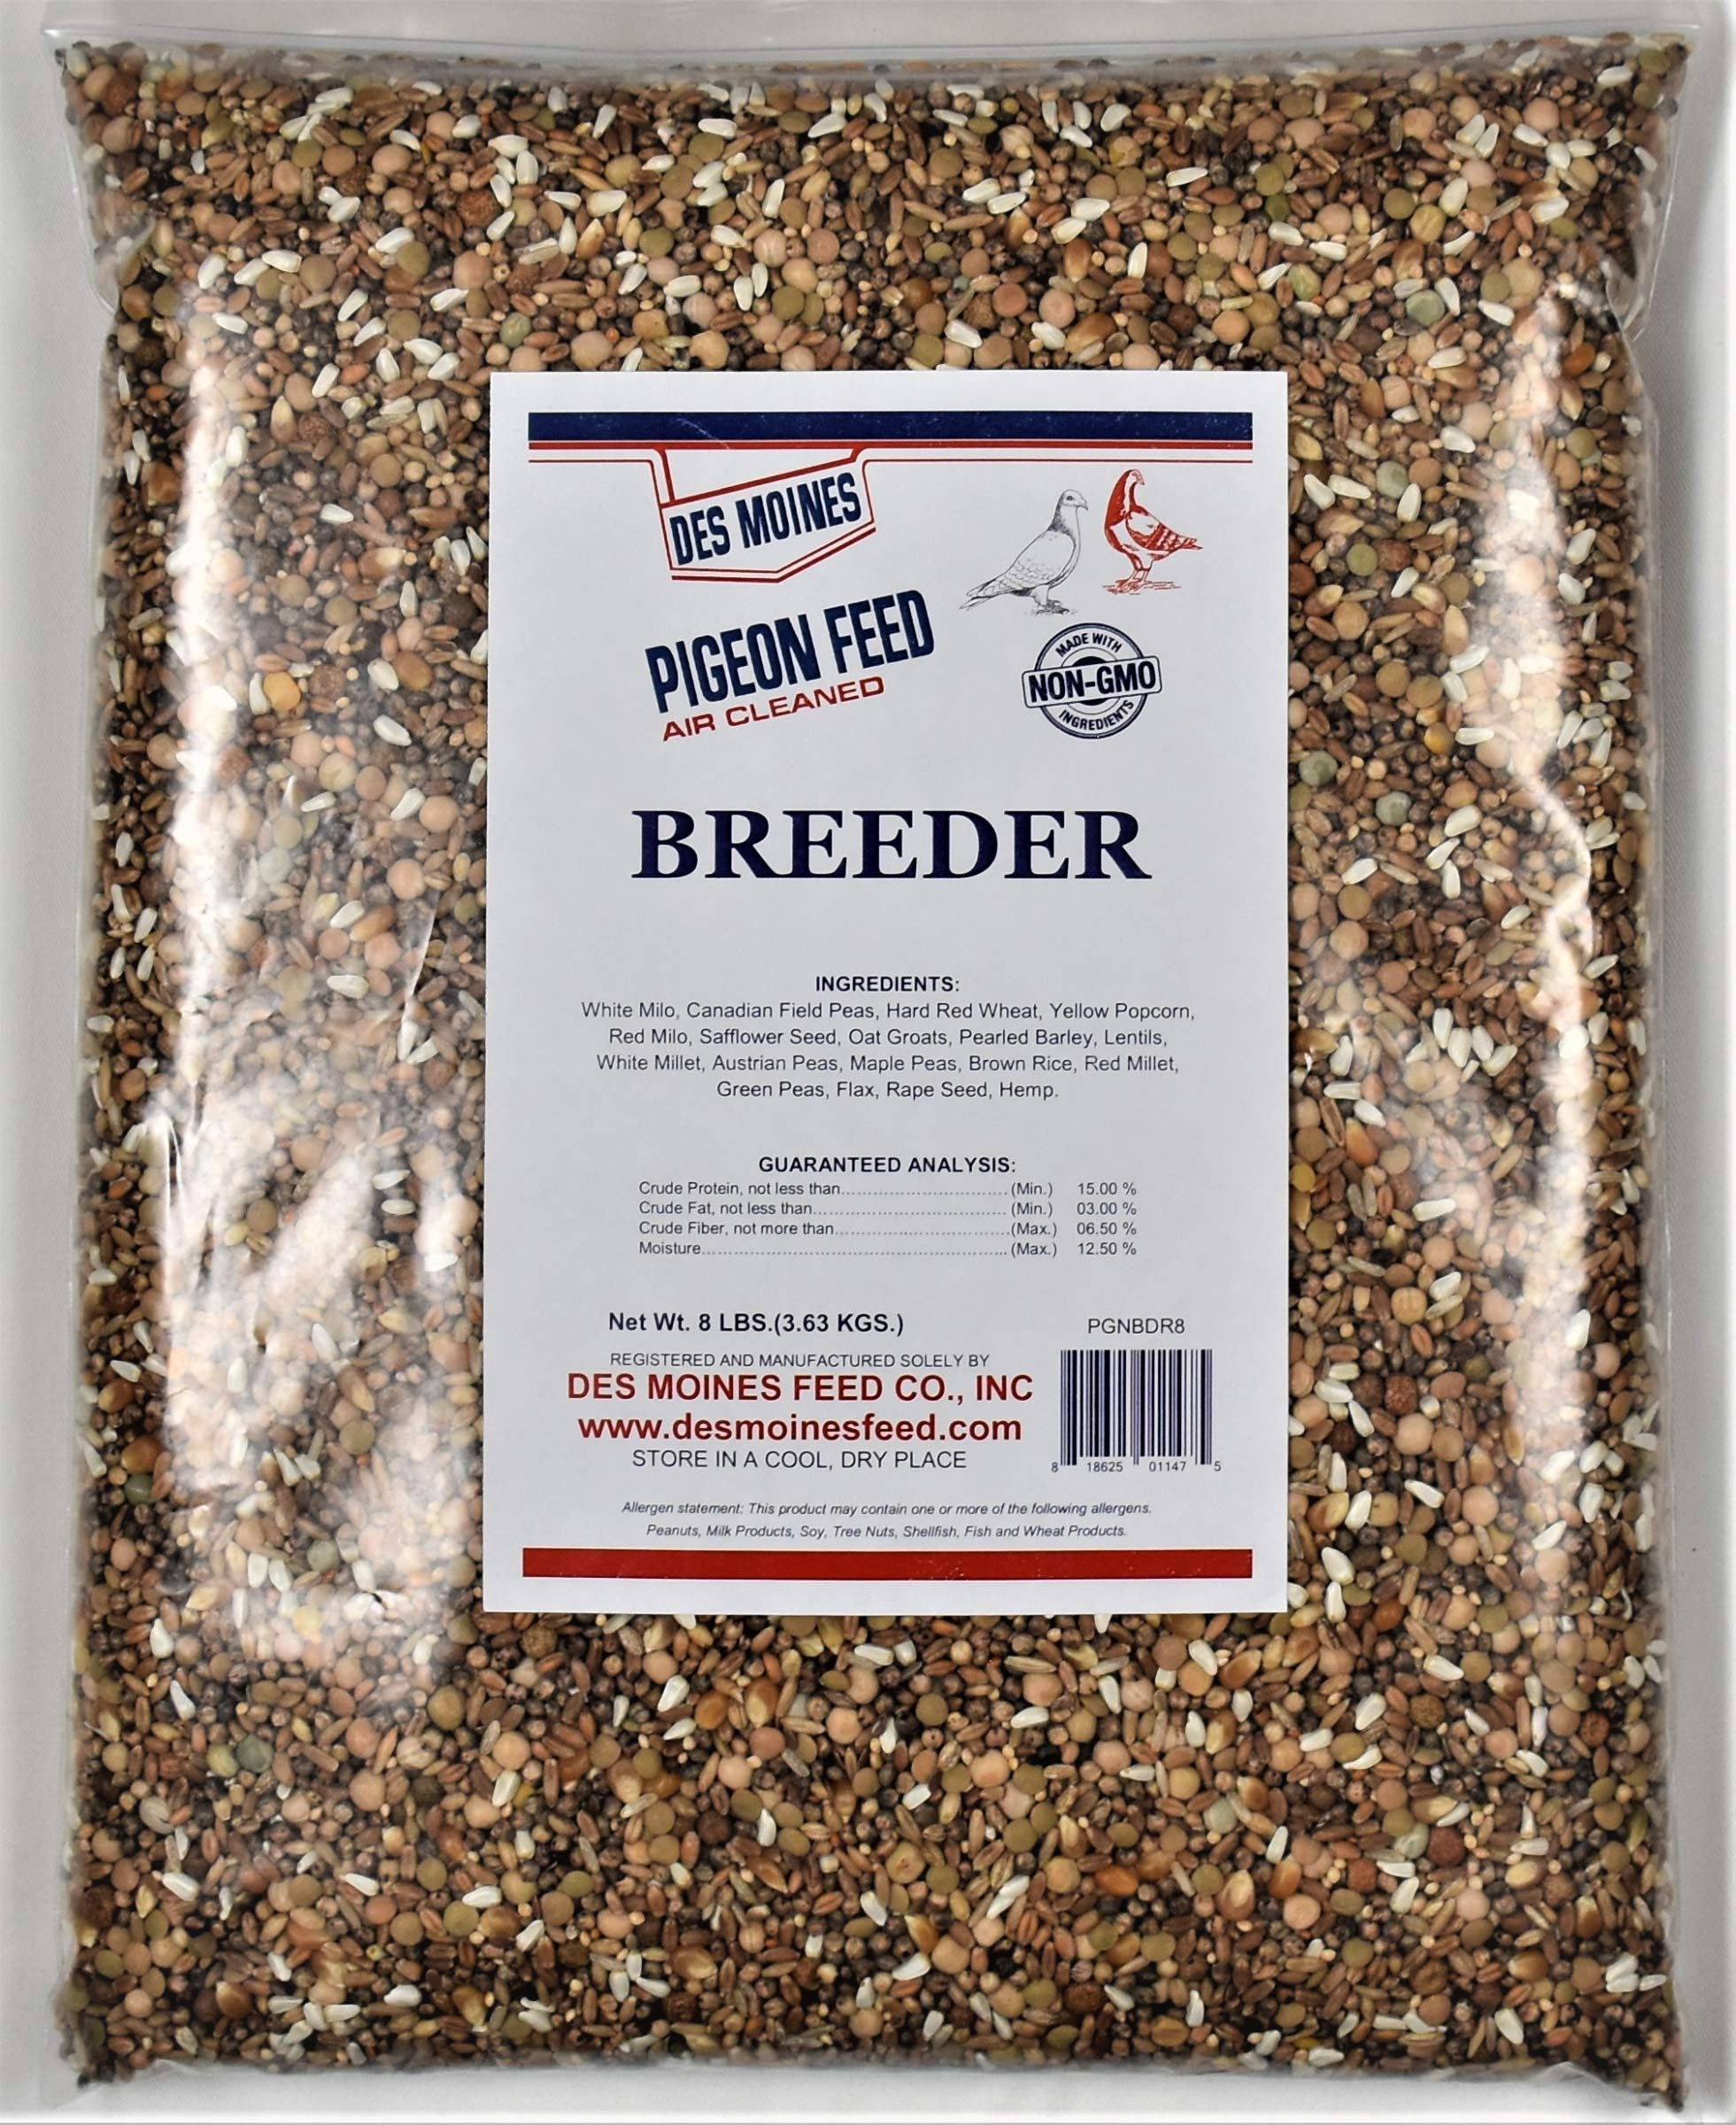 Breeder Pigeon Mix (15%) 8 lbs by Des Moines Pigeon Feed